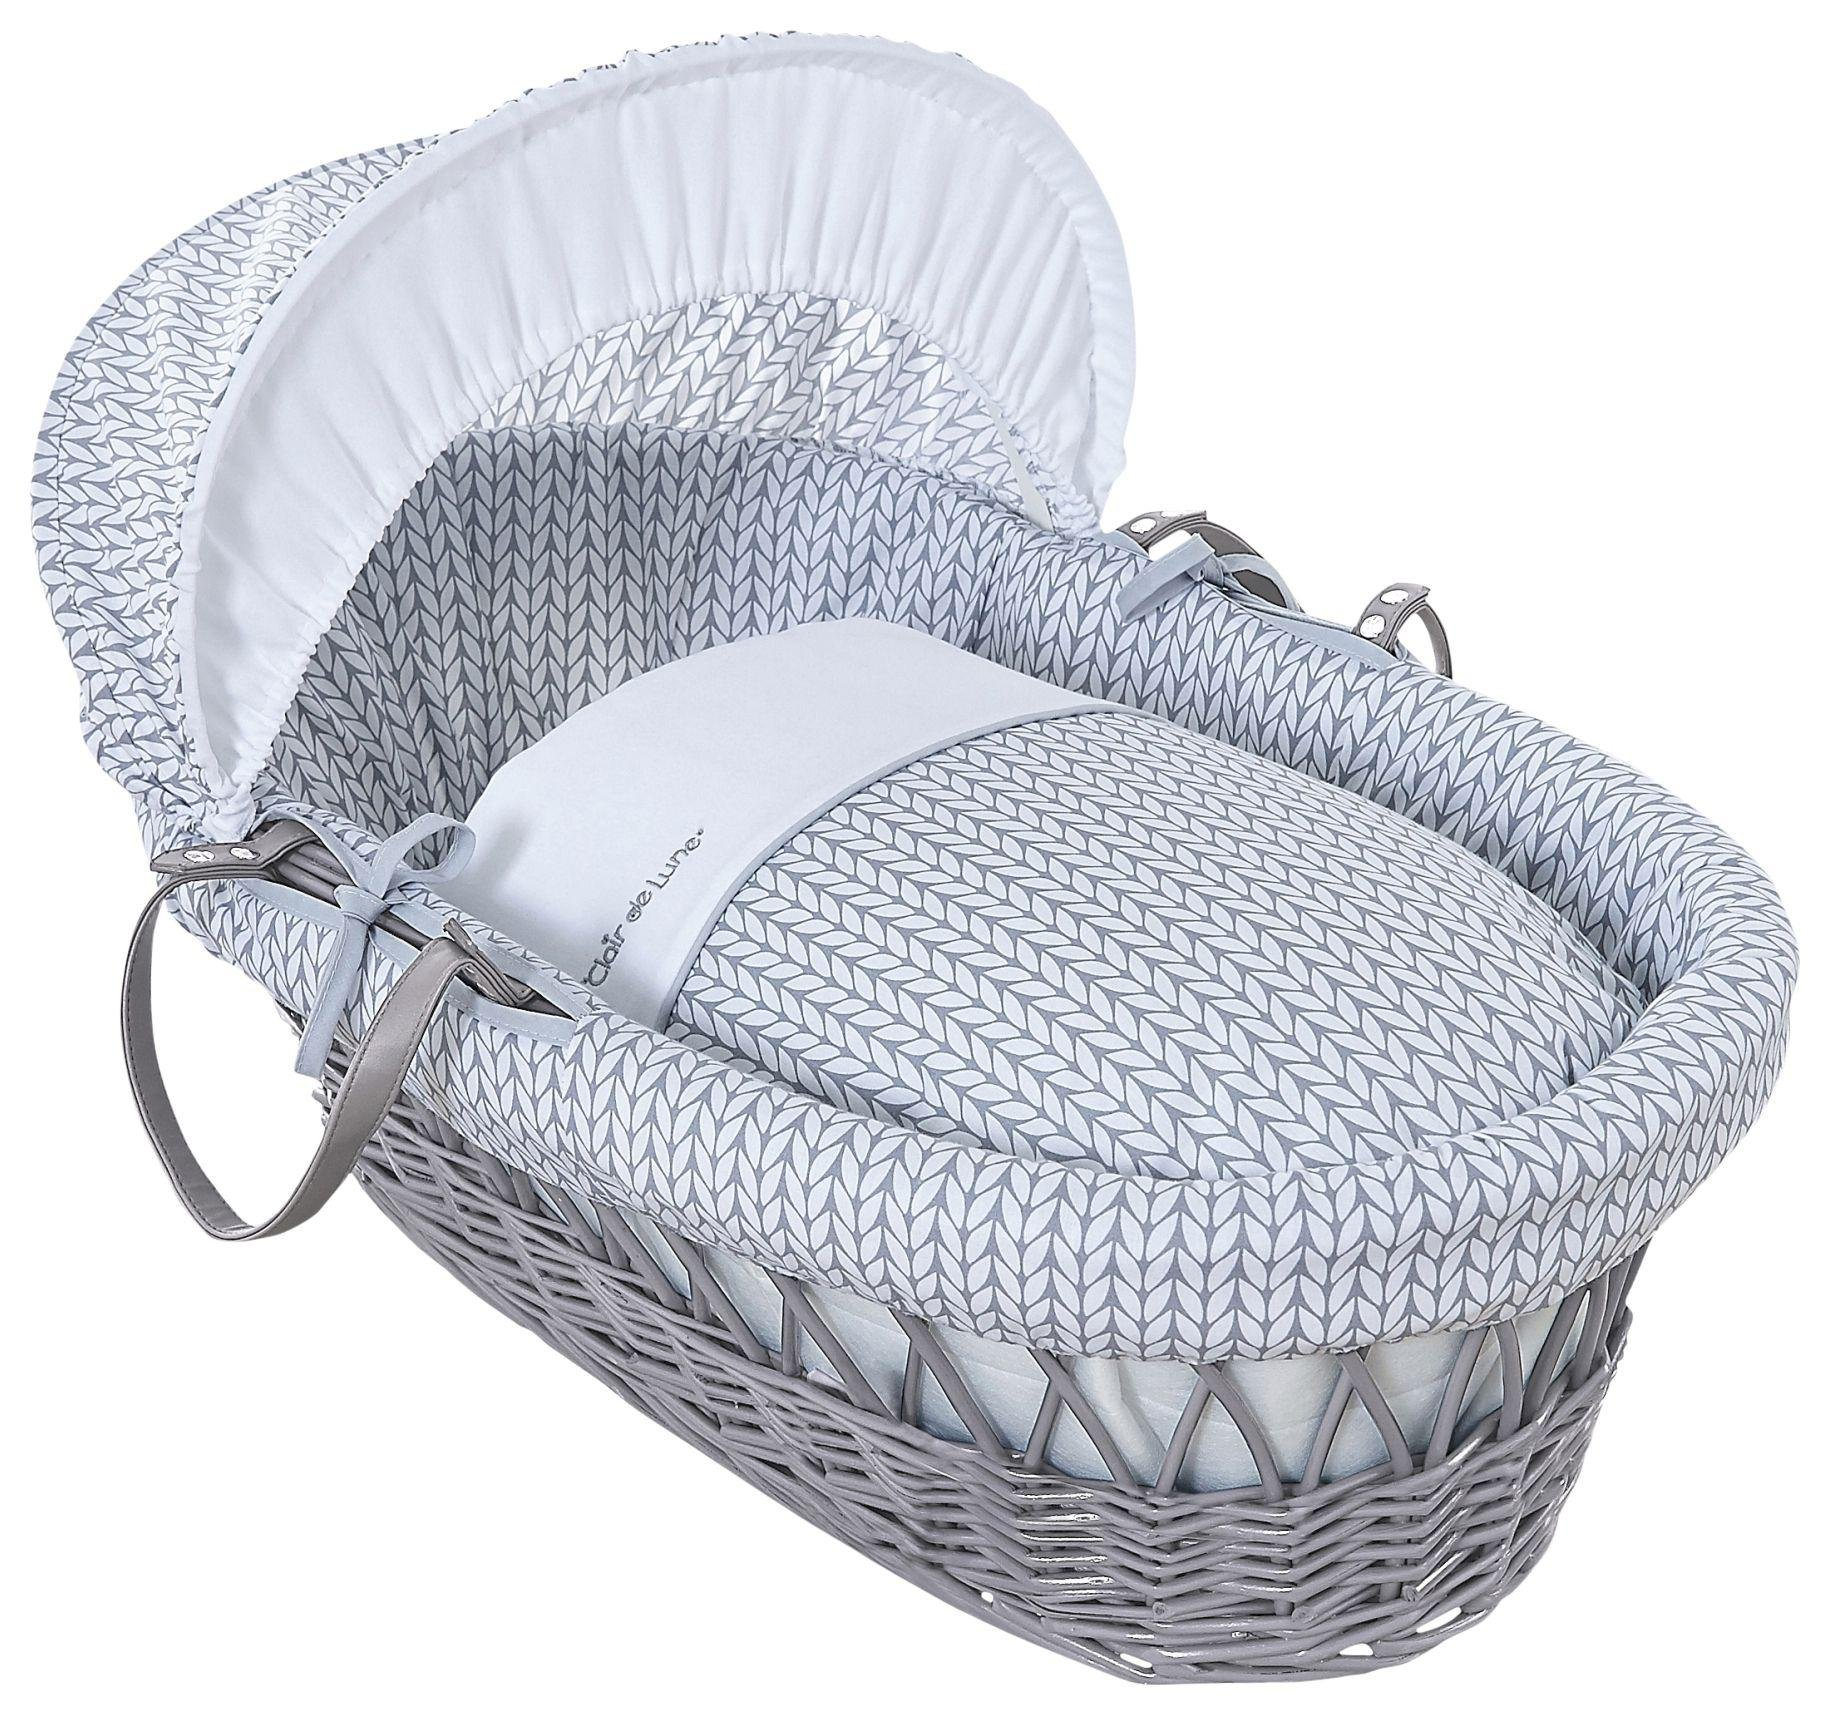 Clair De Lune Barley Bébé Grey Wicker Moses Basket - Grey.